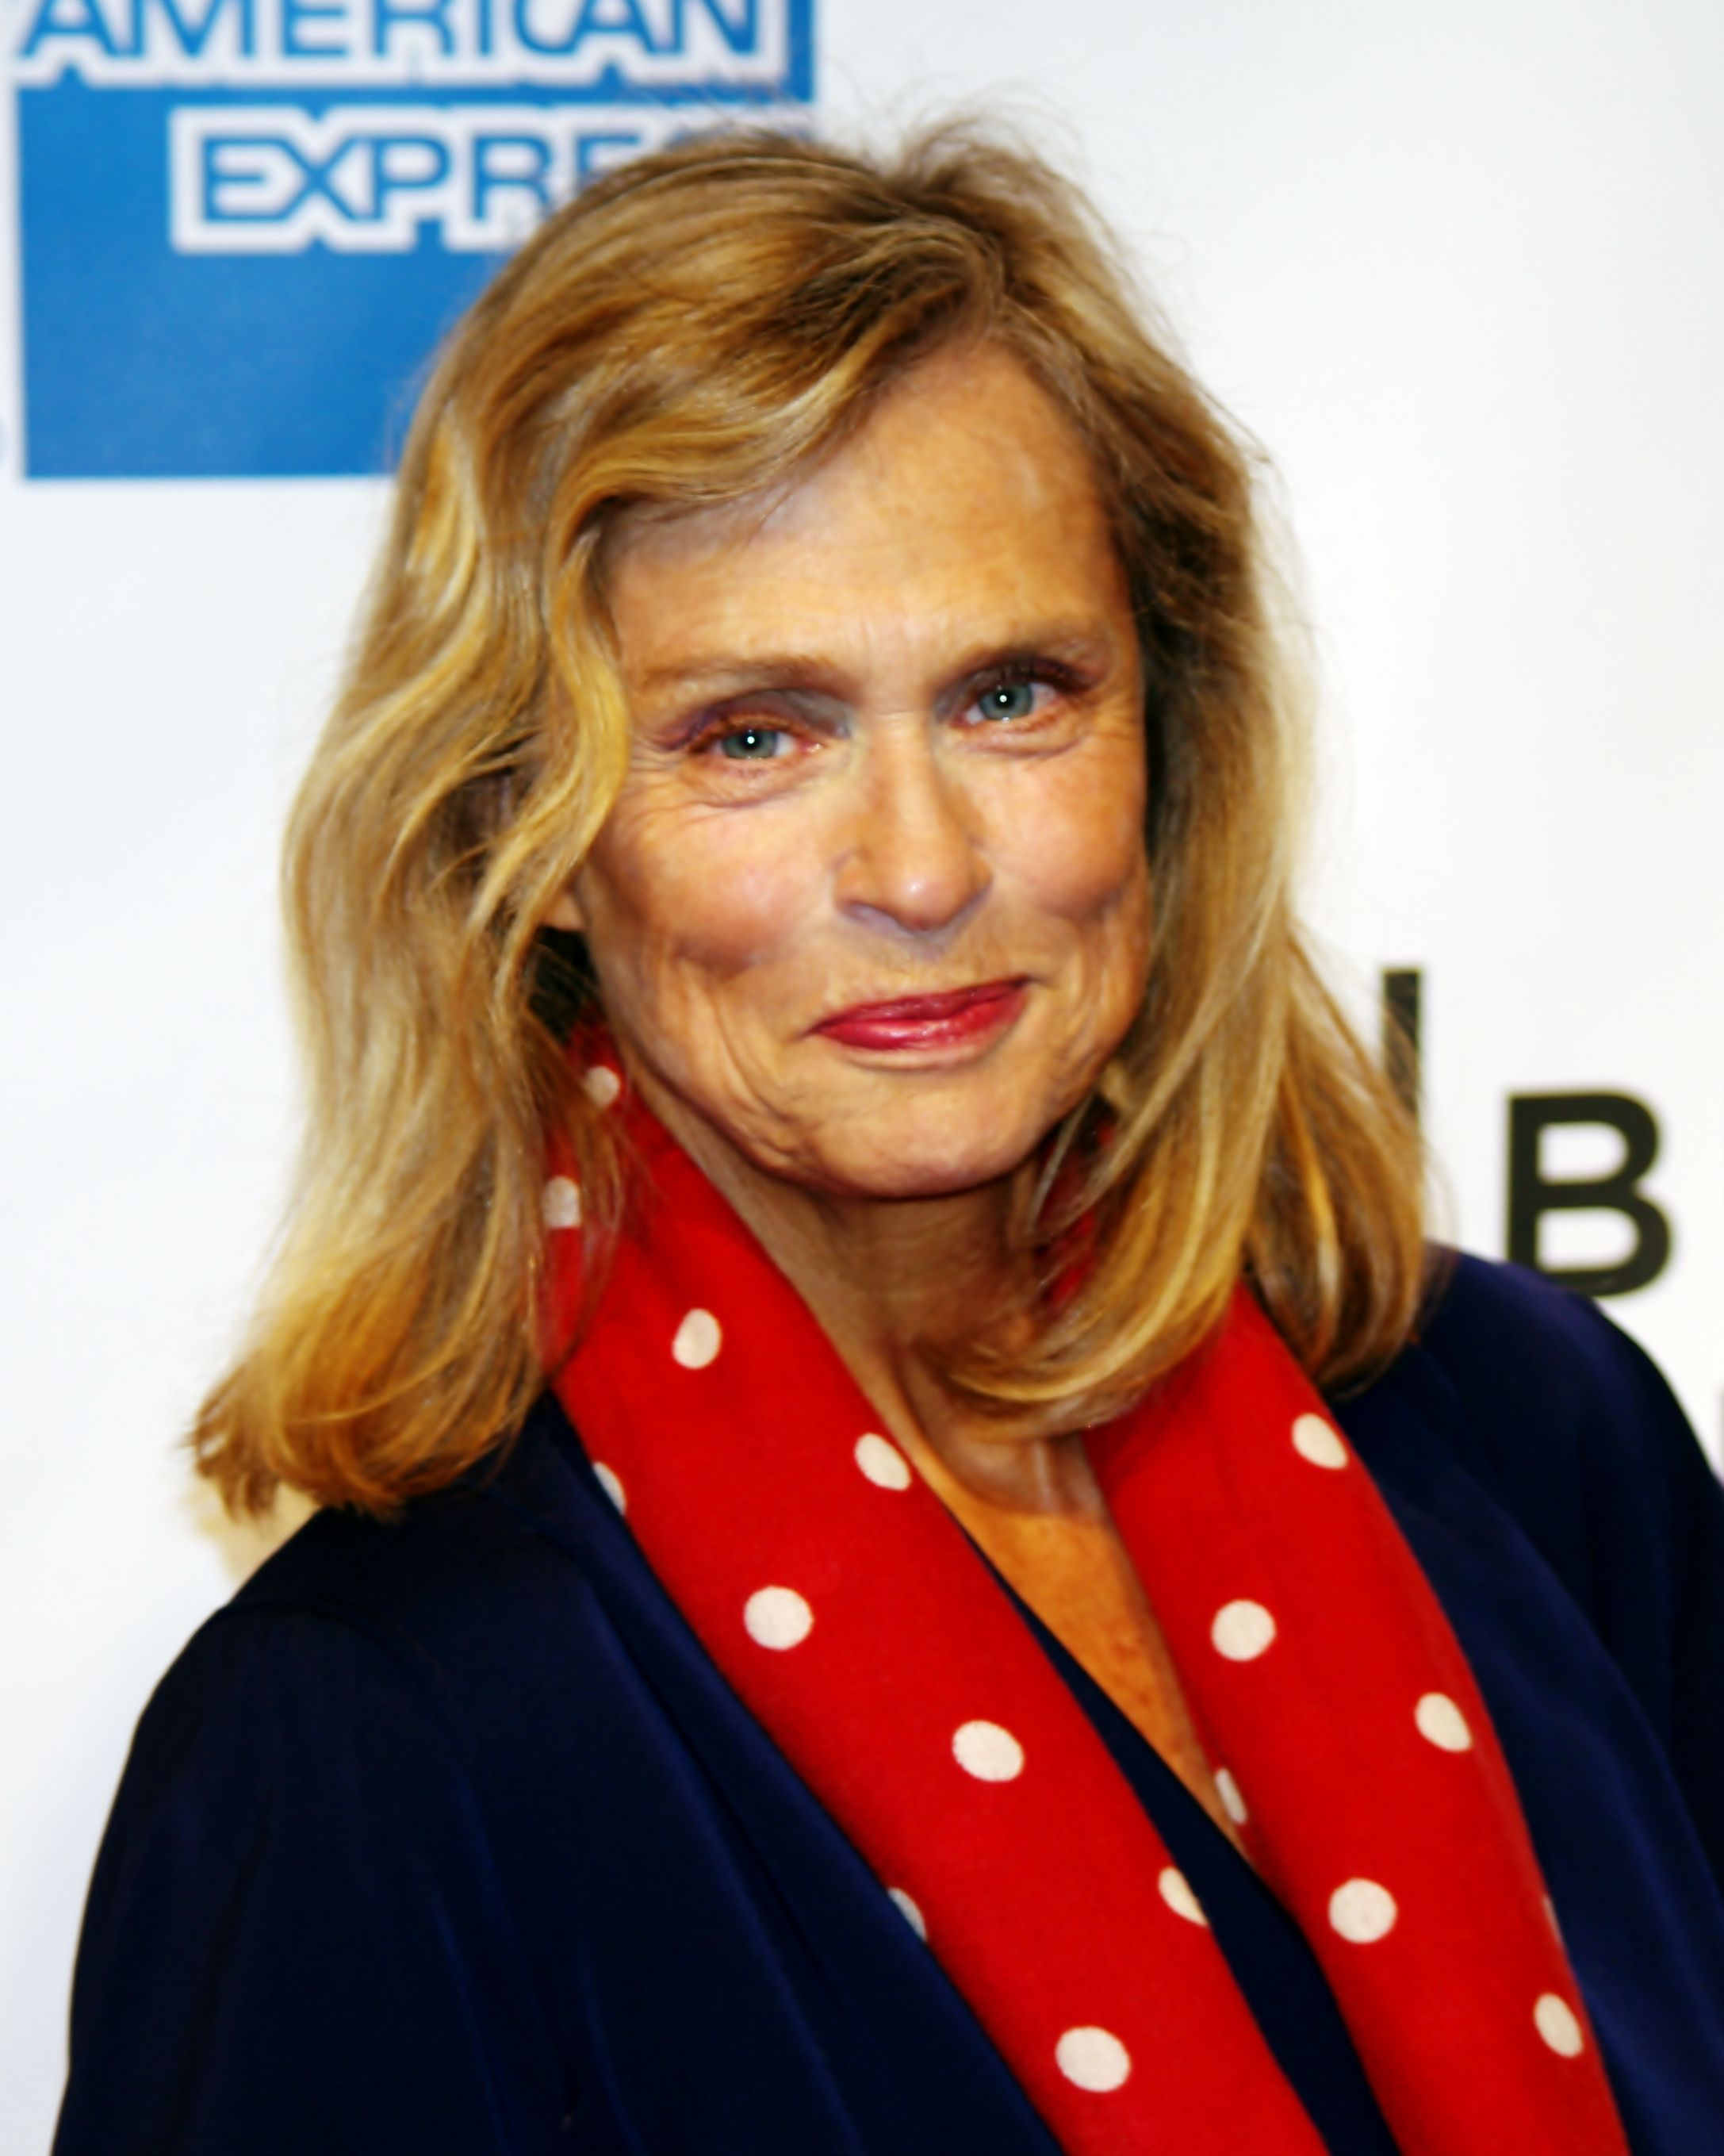 Lauren Hutton, born 17-11-1943